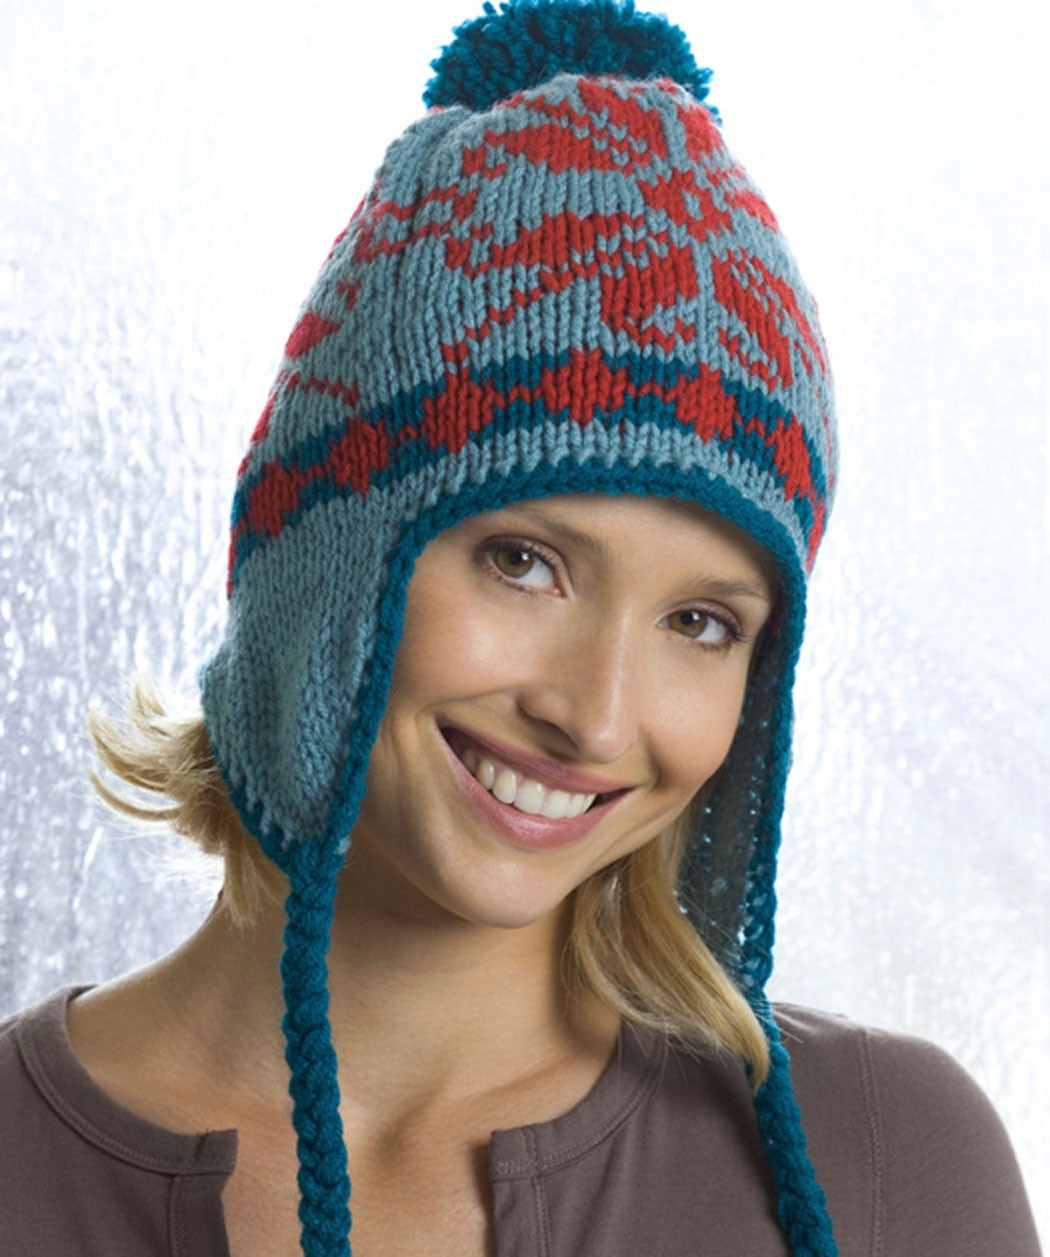 Earflap Hat Knitting Pattern Free : Earflap Hat Knitting Pattern A Knitting Blog